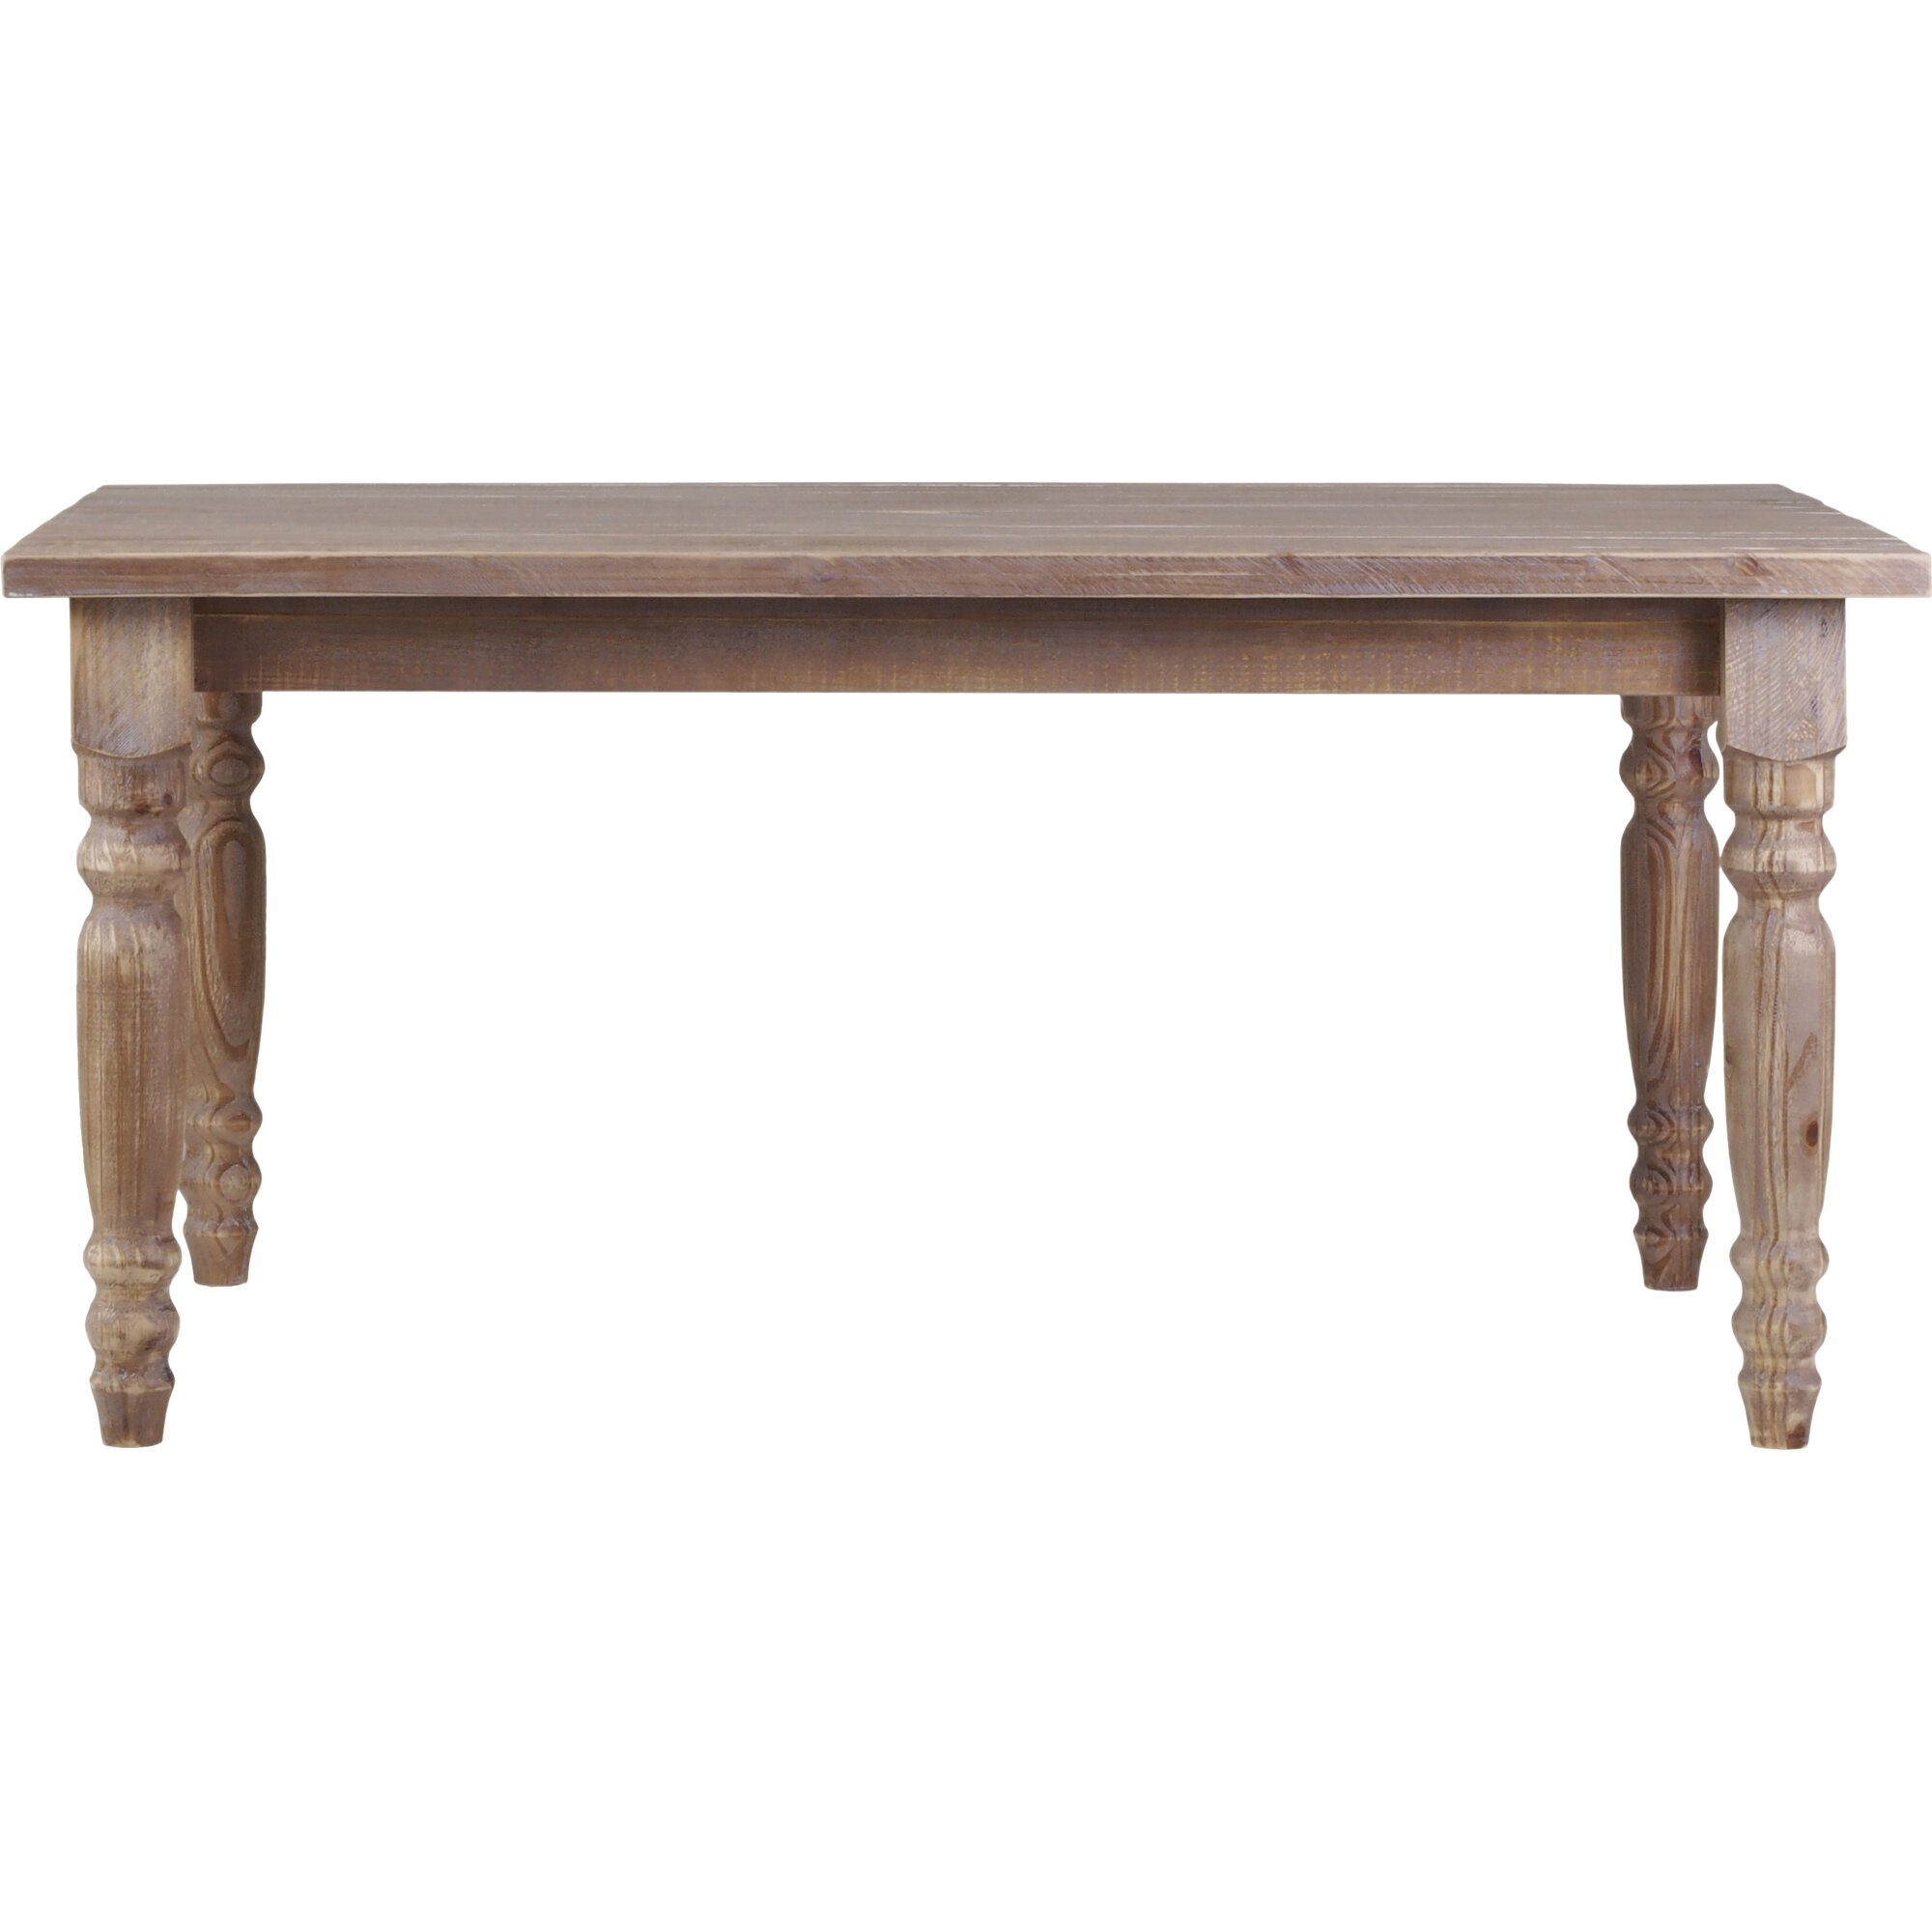 Grain Wood Furniture Valerie Dining Table amp Reviews Wayfair : ValerieDiningTable from www.wayfair.com size 2000 x 2000 jpeg 143kB